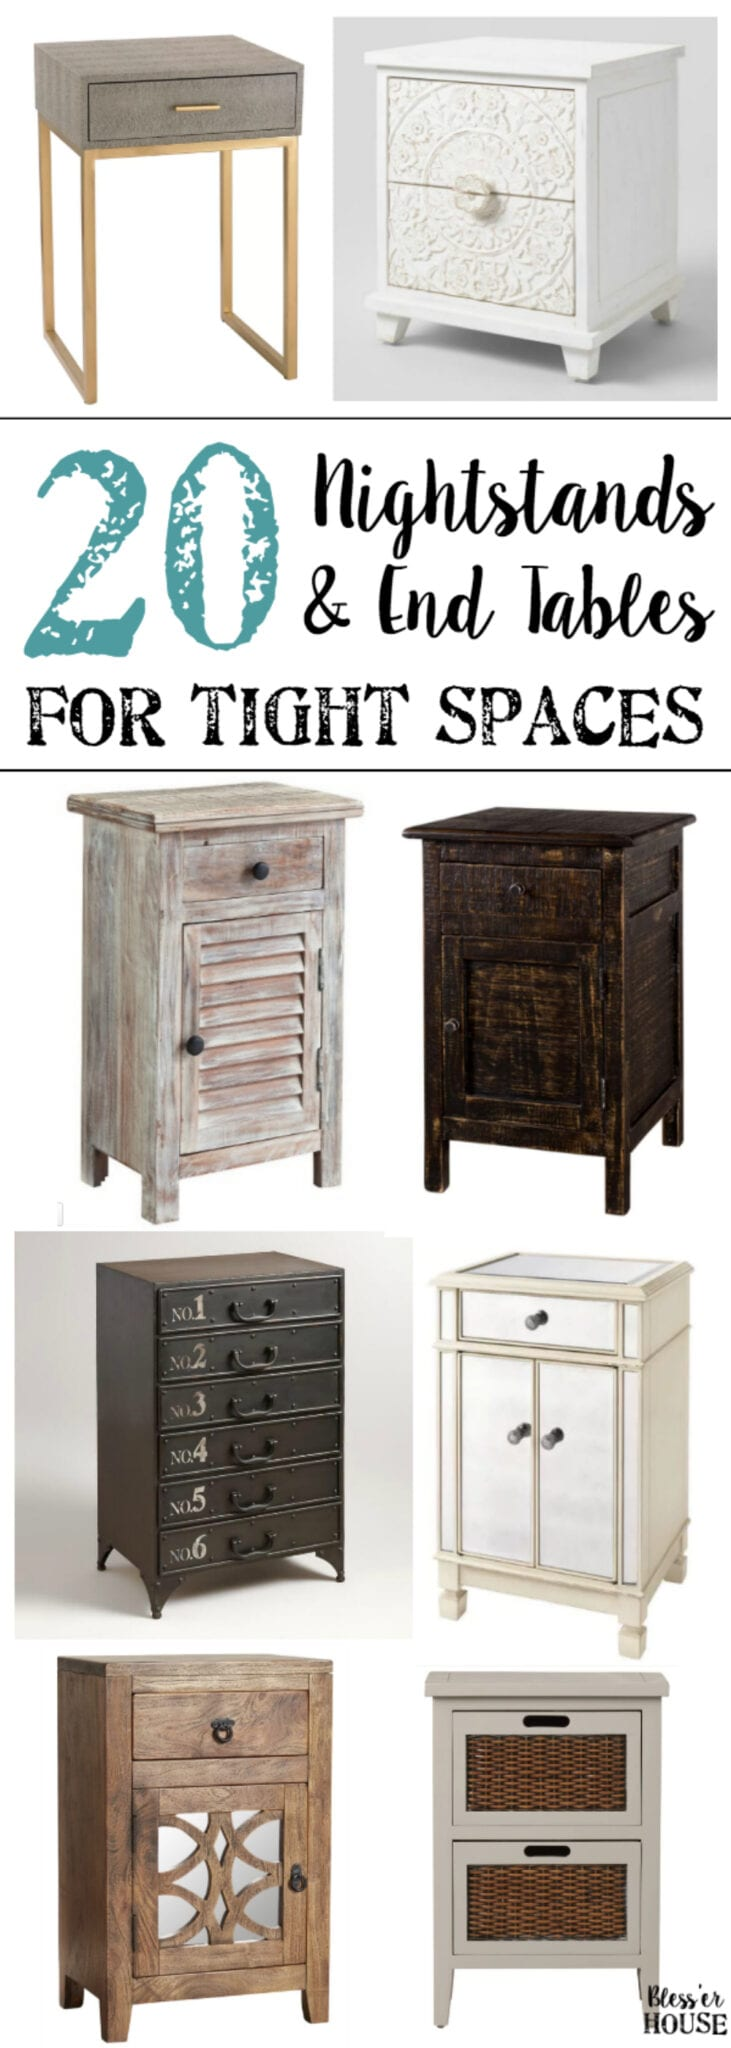 20 Nightstands and End Tables for Tight Spaces - Bless\'er House